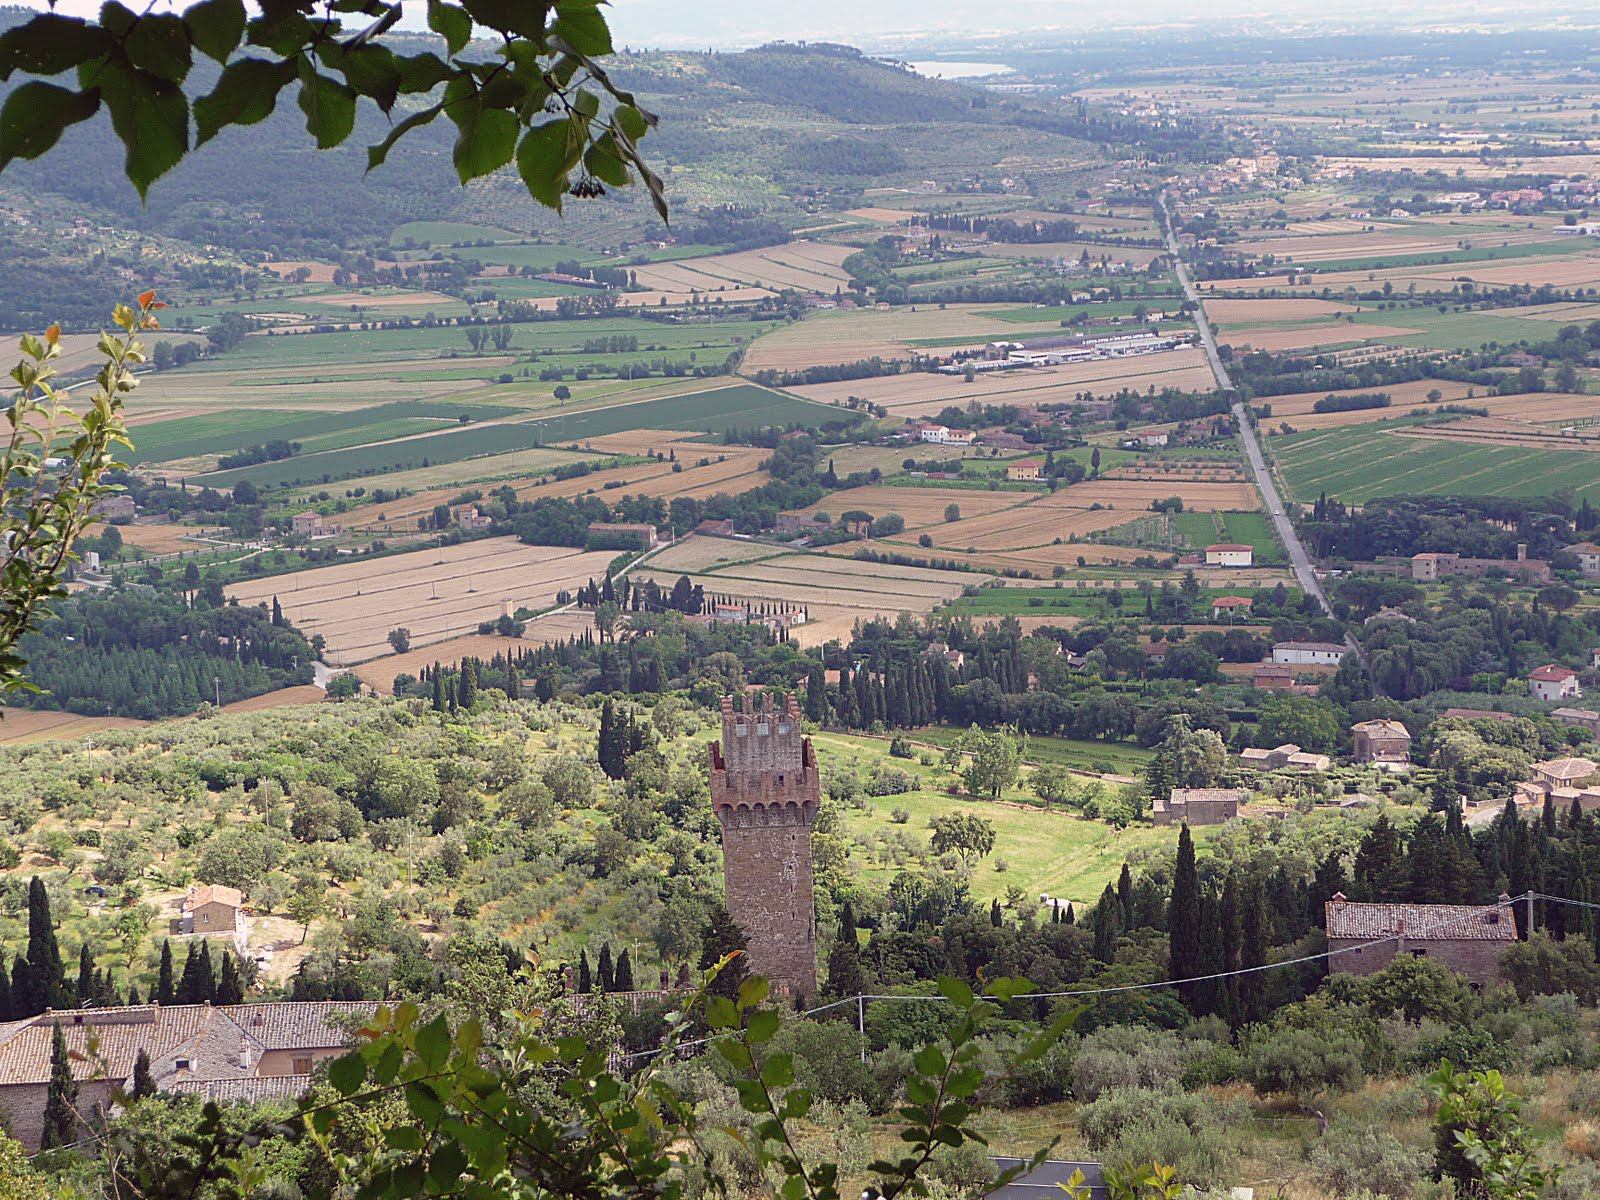 Cortona Italy  city images : orable. Cortona is stately situated above the valley below and as we ...